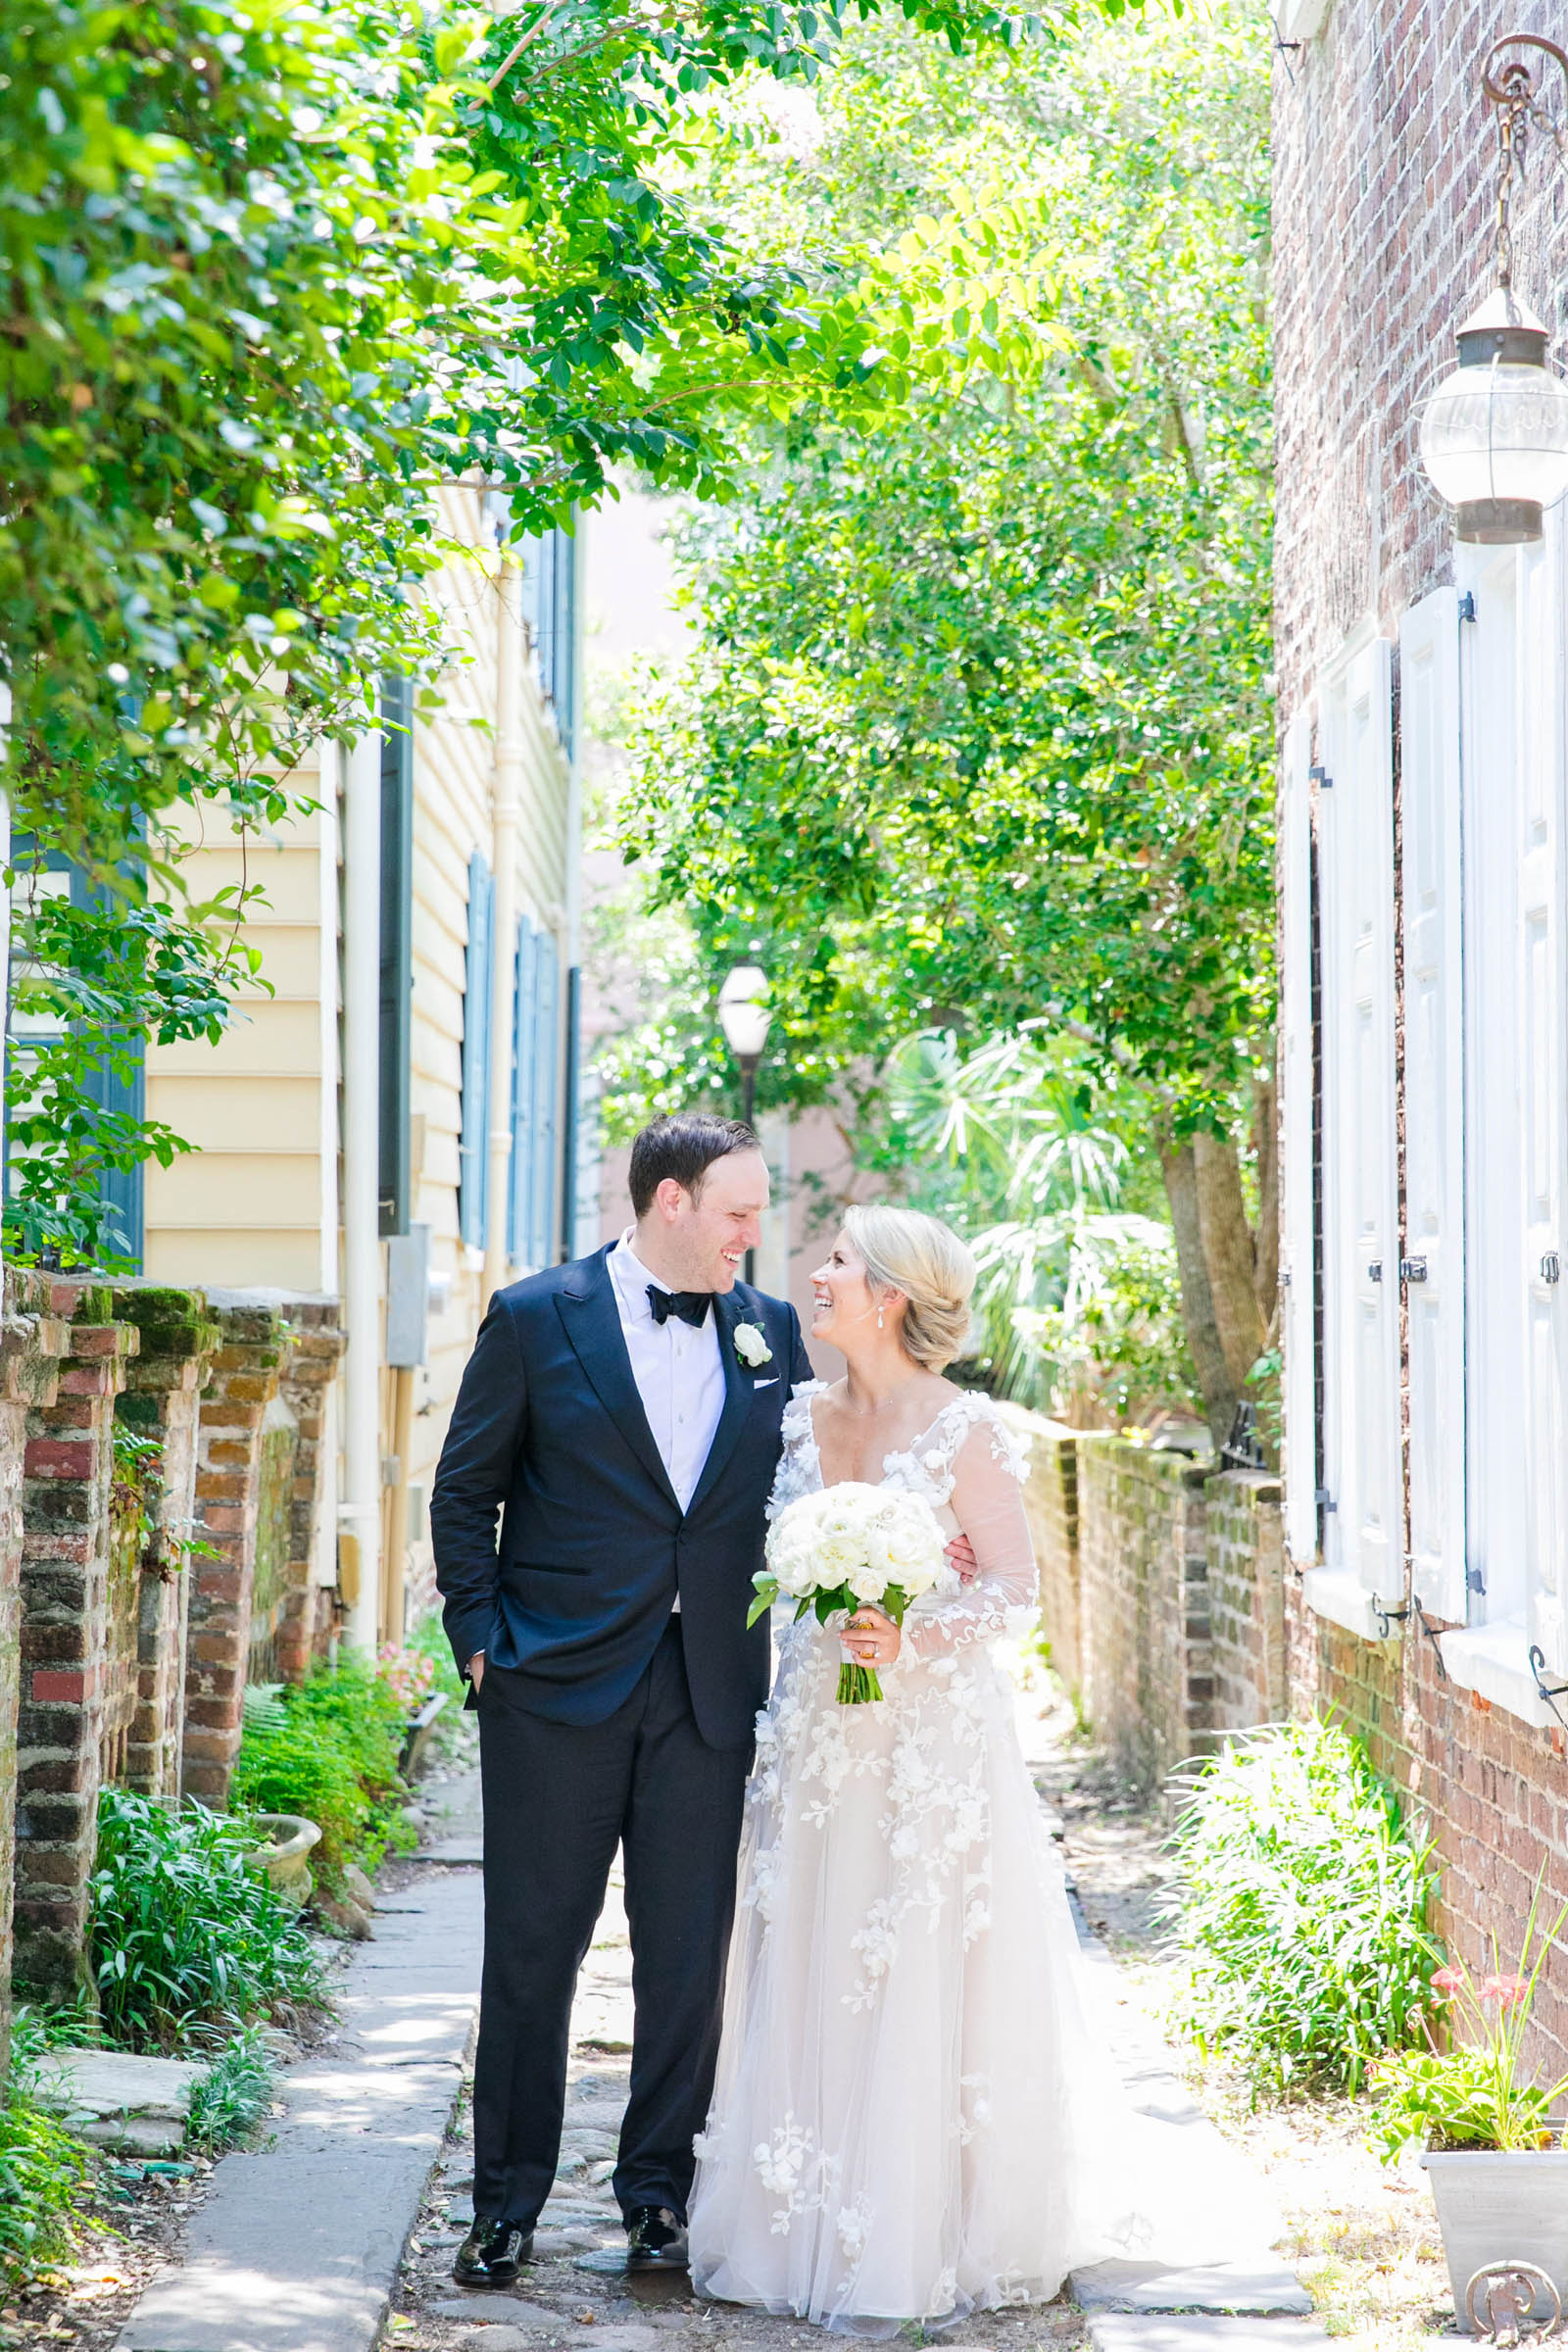 Couple in picturesque alley- photo by Dana Cubbage Weddings